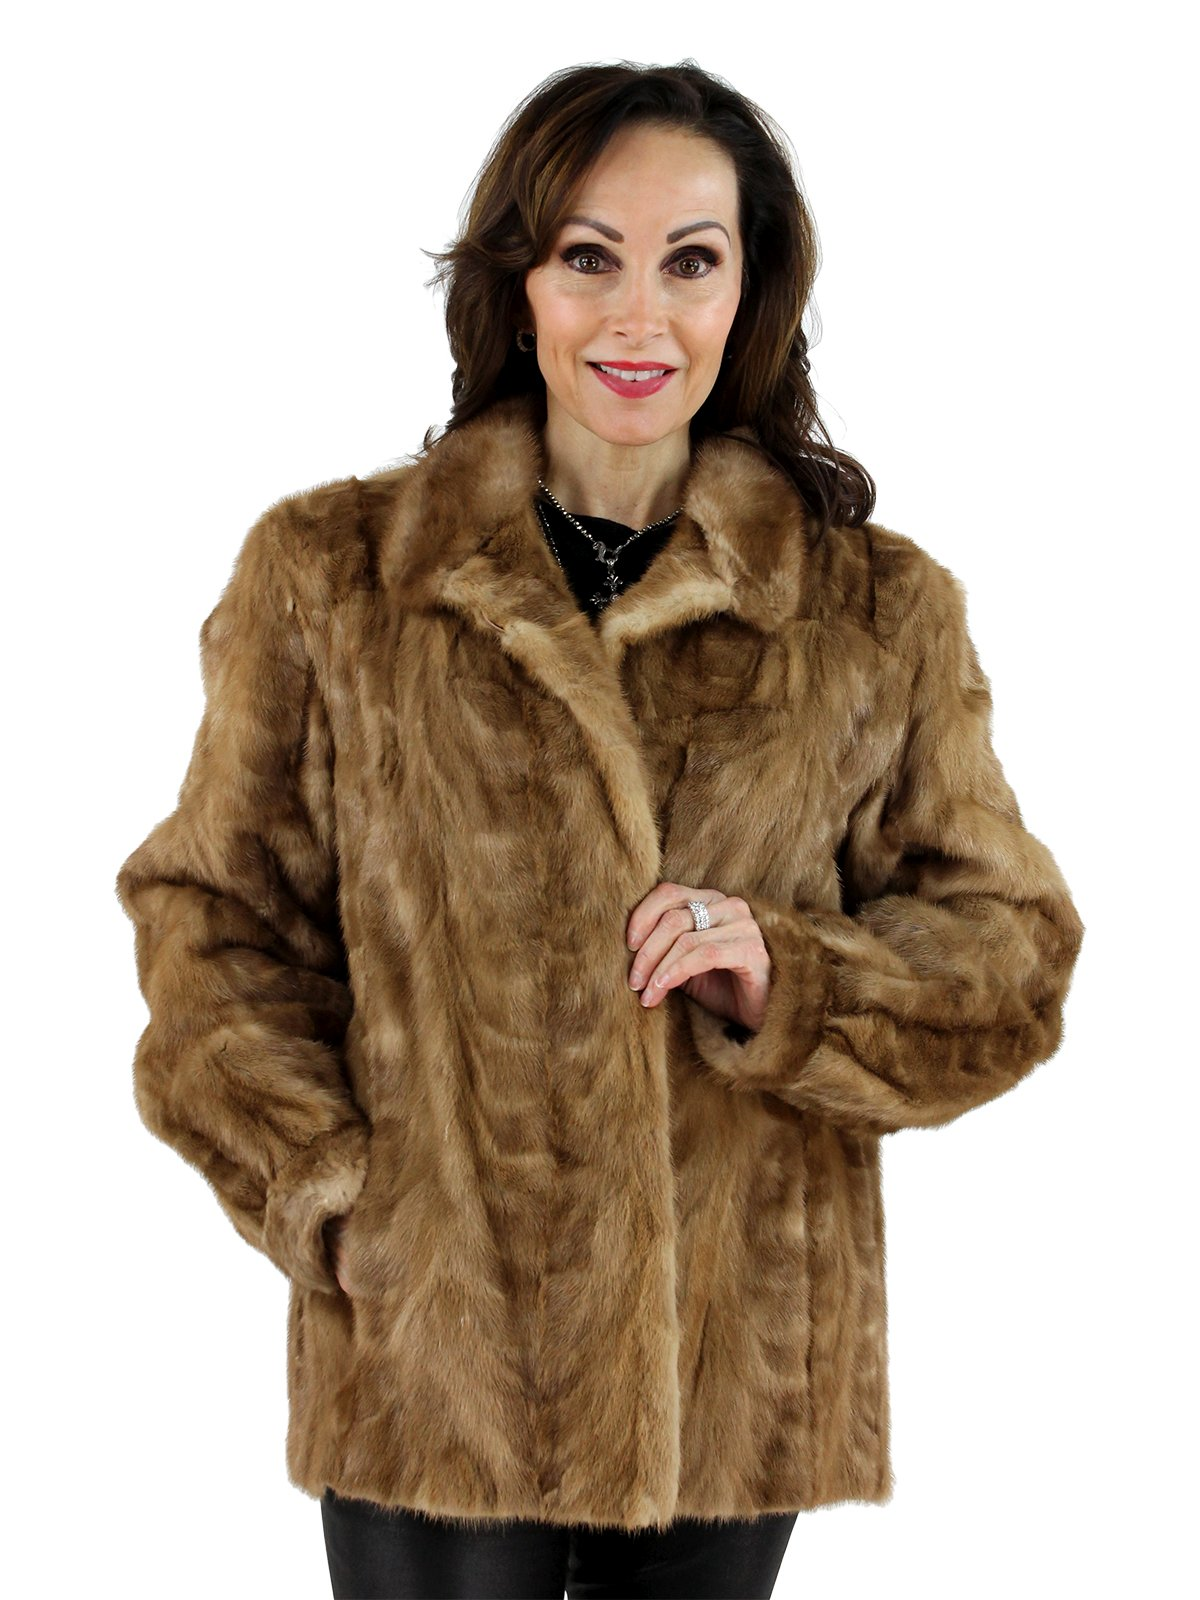 Pastel Mink Fur Section Jacket Women S Large Estate Furs